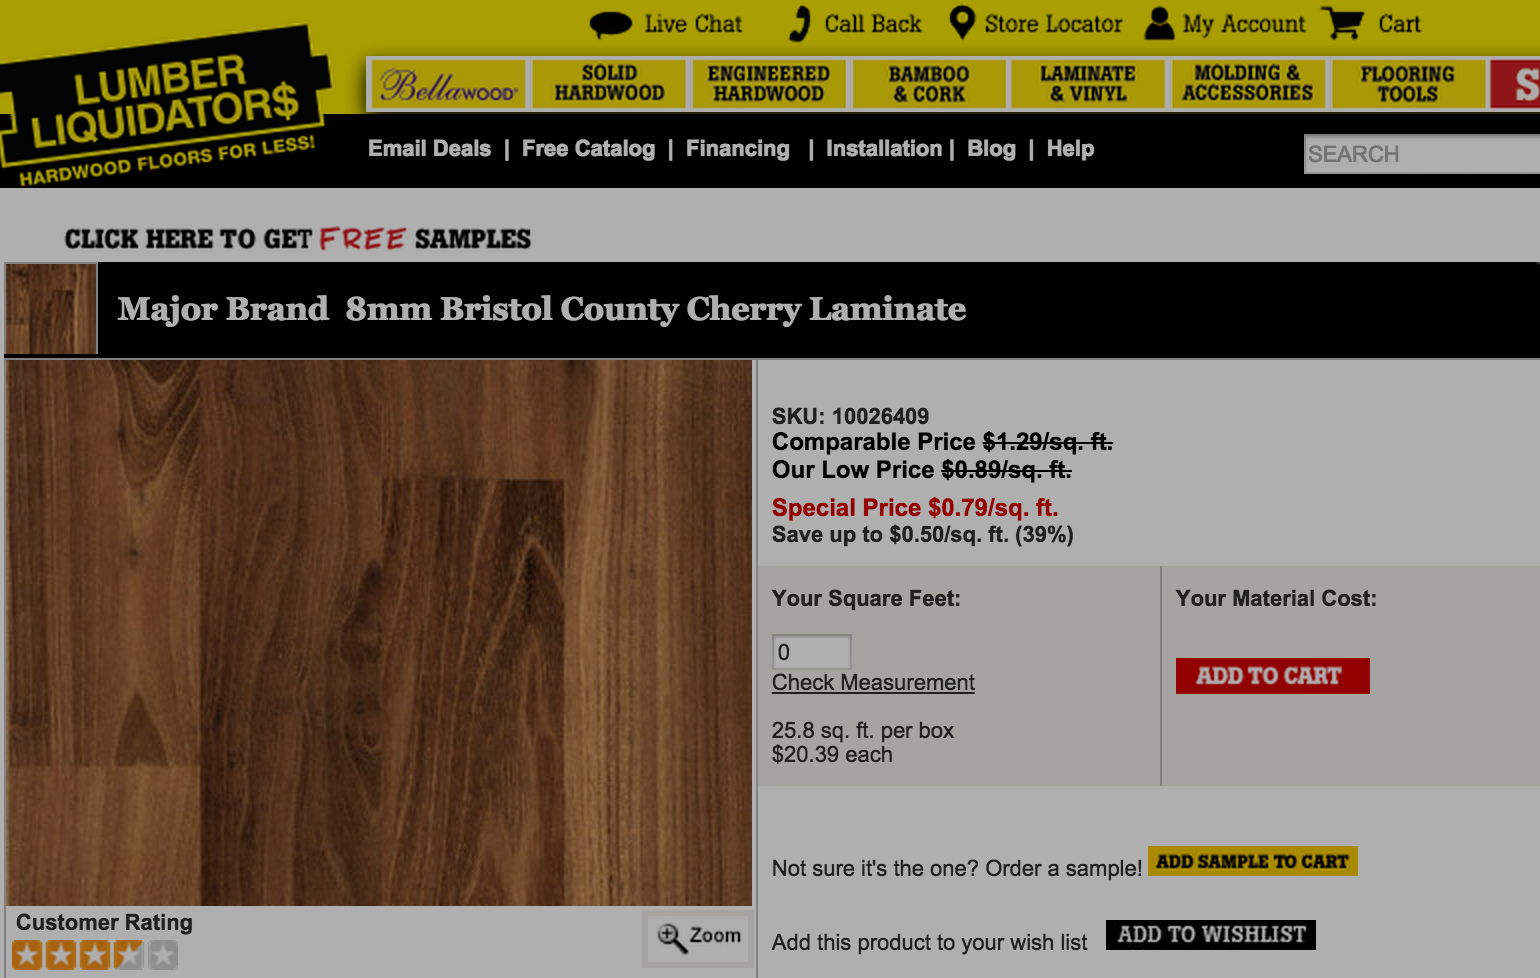 Lumber Liquidators Won't Resume Sale Of Laminate Wood Flooring From China